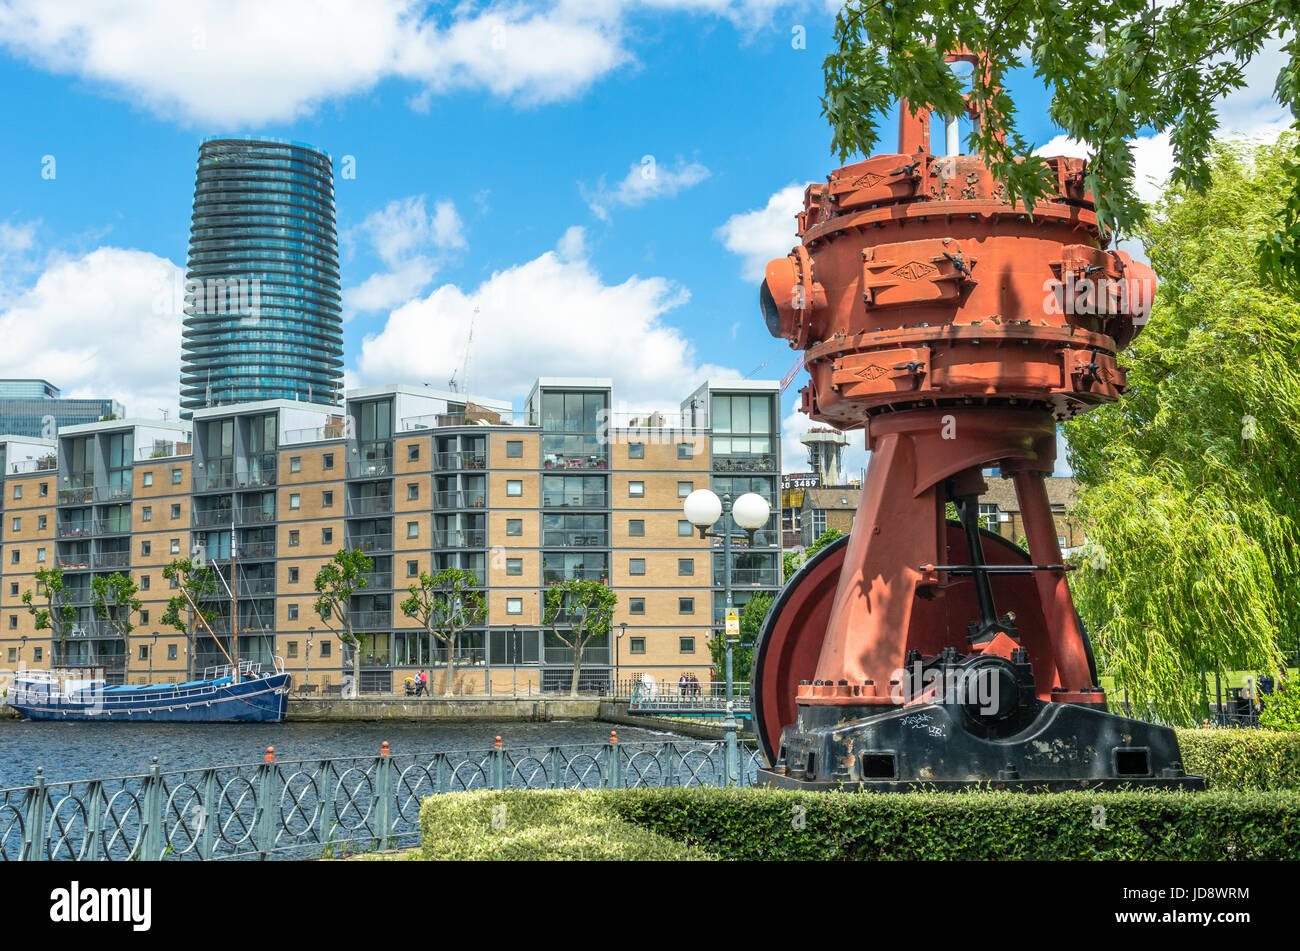 Residential and luxury apartments at the Millwall Outer Dock, Isle of Dogs, London - Stock Image